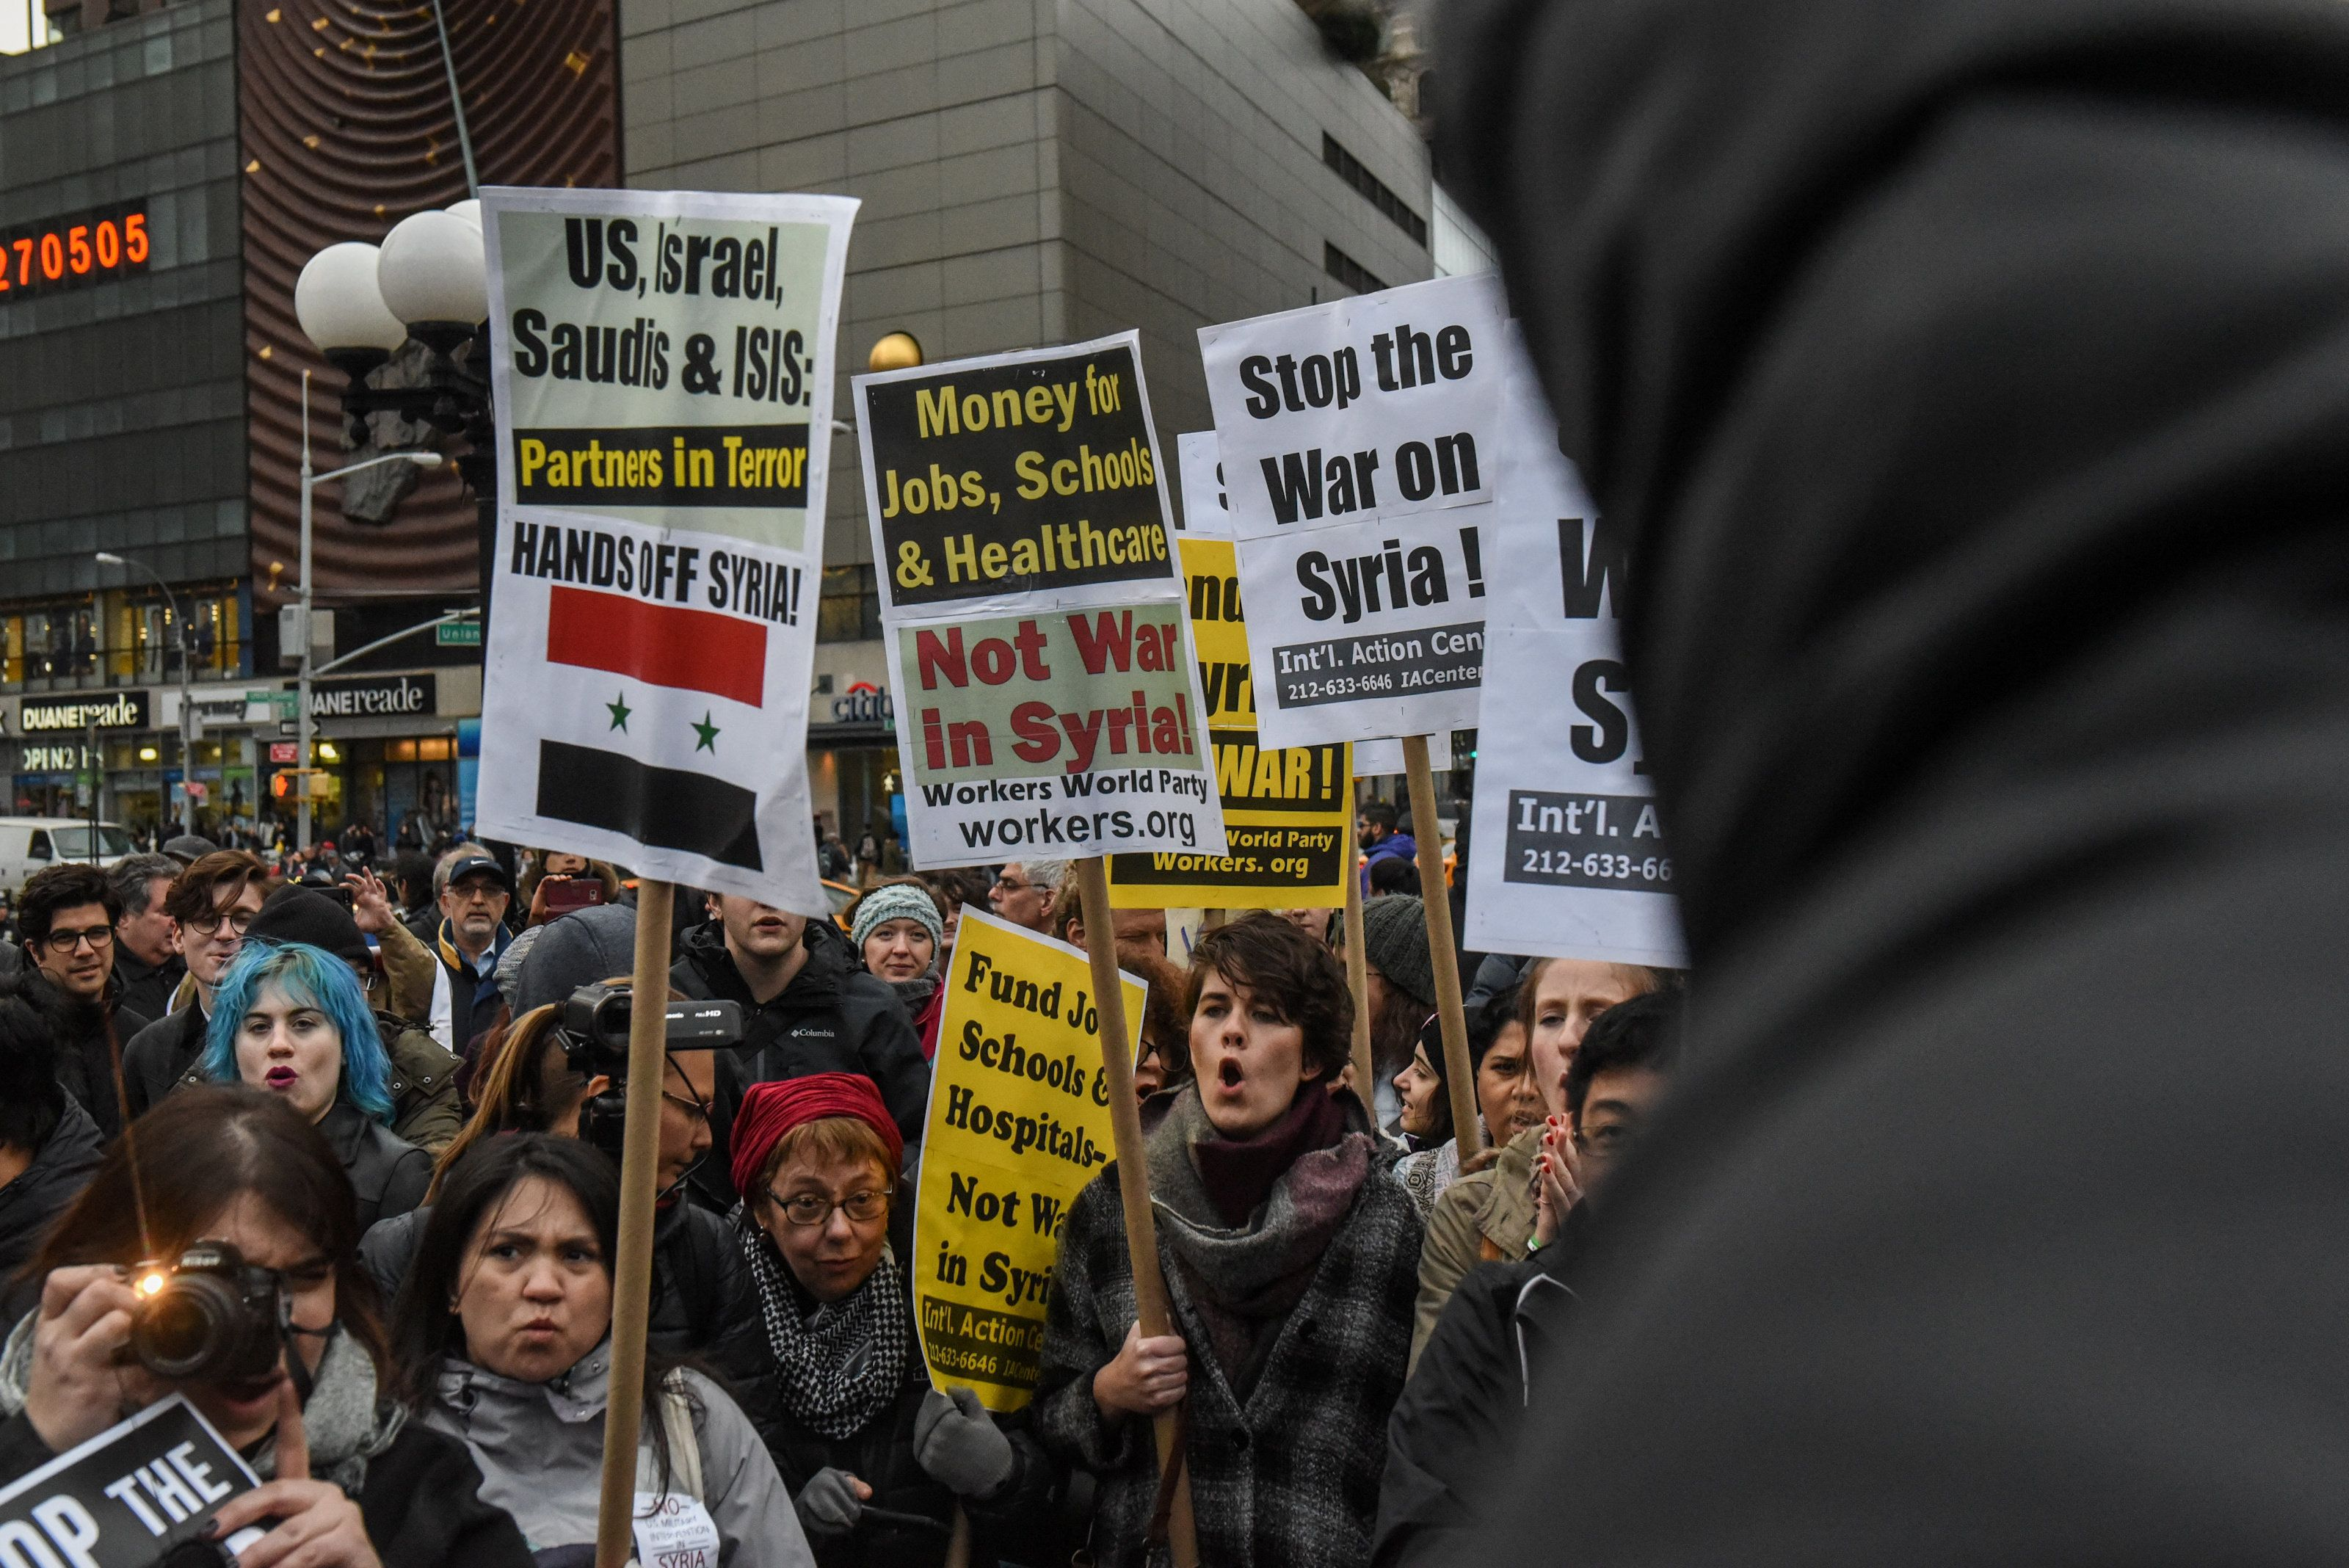 People participate in a demonstration against the recent U.S. strike in Syria, in New York, U.S., April 7, 2017. REUTERS/Stephanie Keith